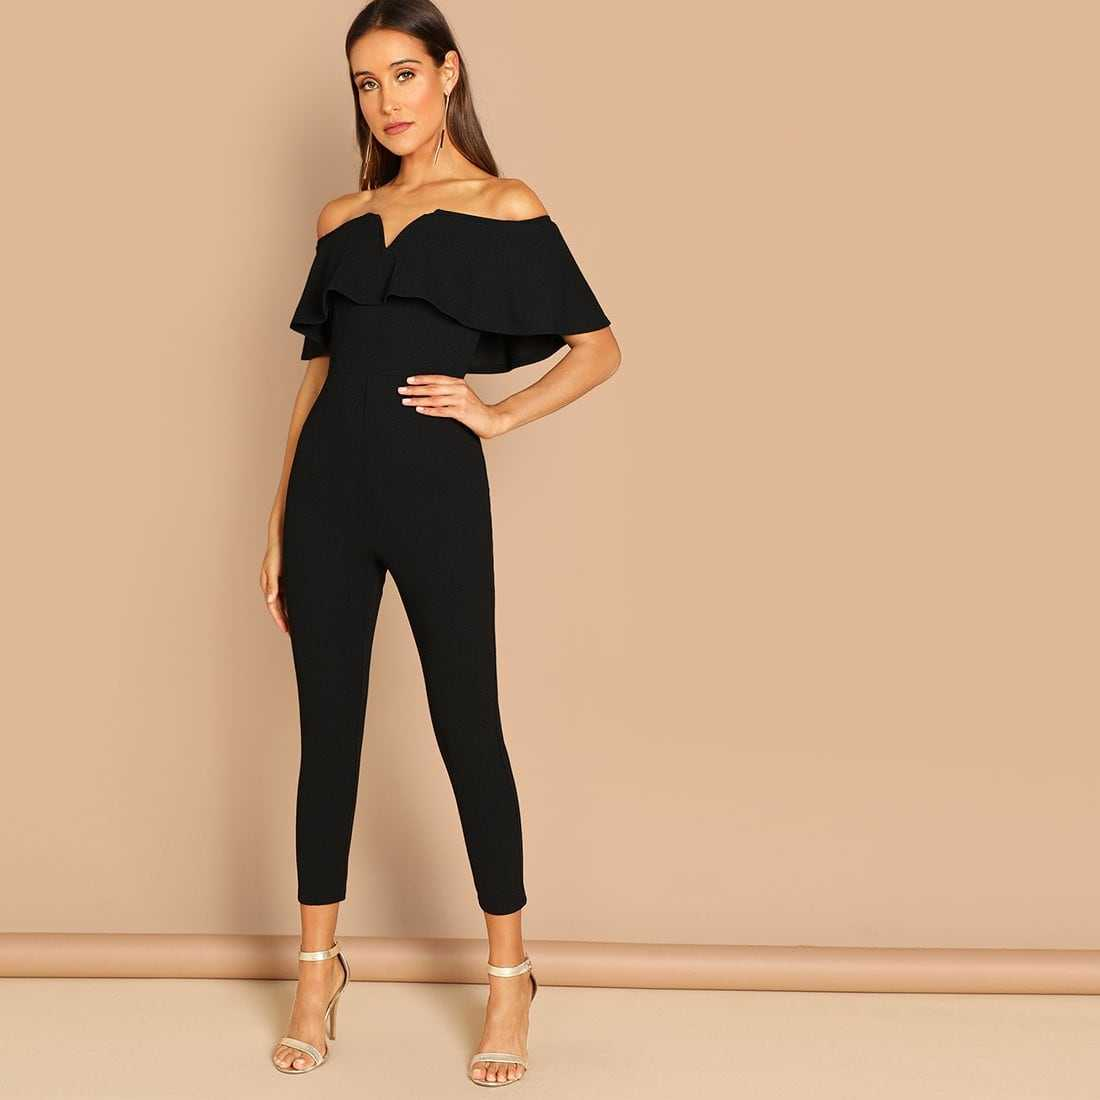 Flounce Foldover Front Off Shoulder Skinny Jumpsuit in Black by ROMWE on GOOFASH